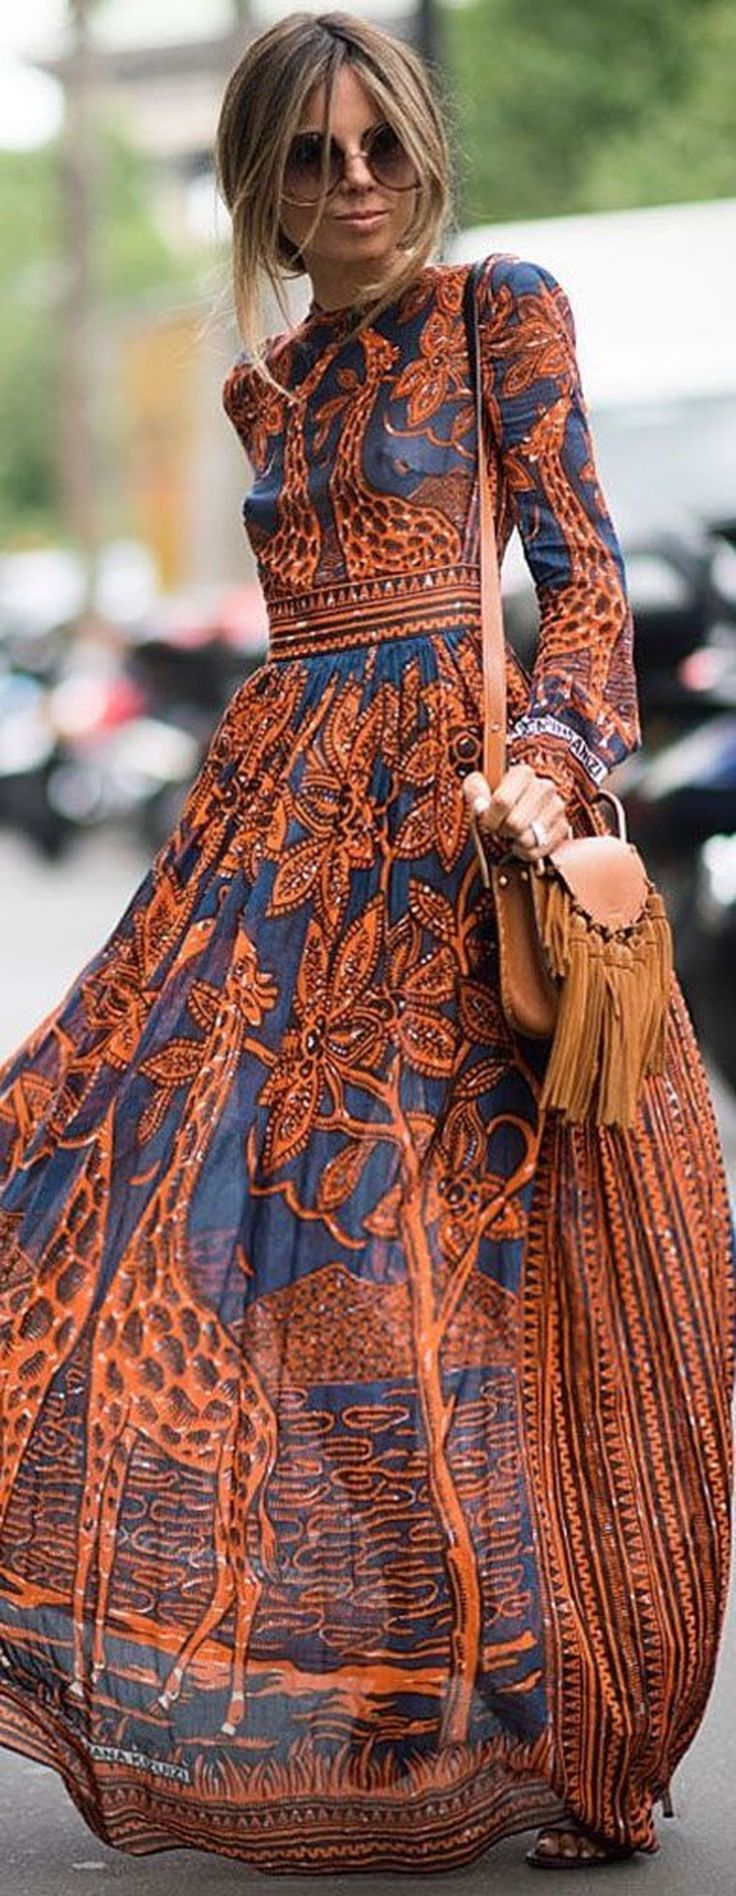 Nice 62 Trends Ideas For Long Sleeve Maxi Dress To Makes You Look Casual. More at http://trendwear4you.com/2018/02/22/62-trends-ideas-long-sleeve-maxi-dress-makes-look-casual/ #casuallook